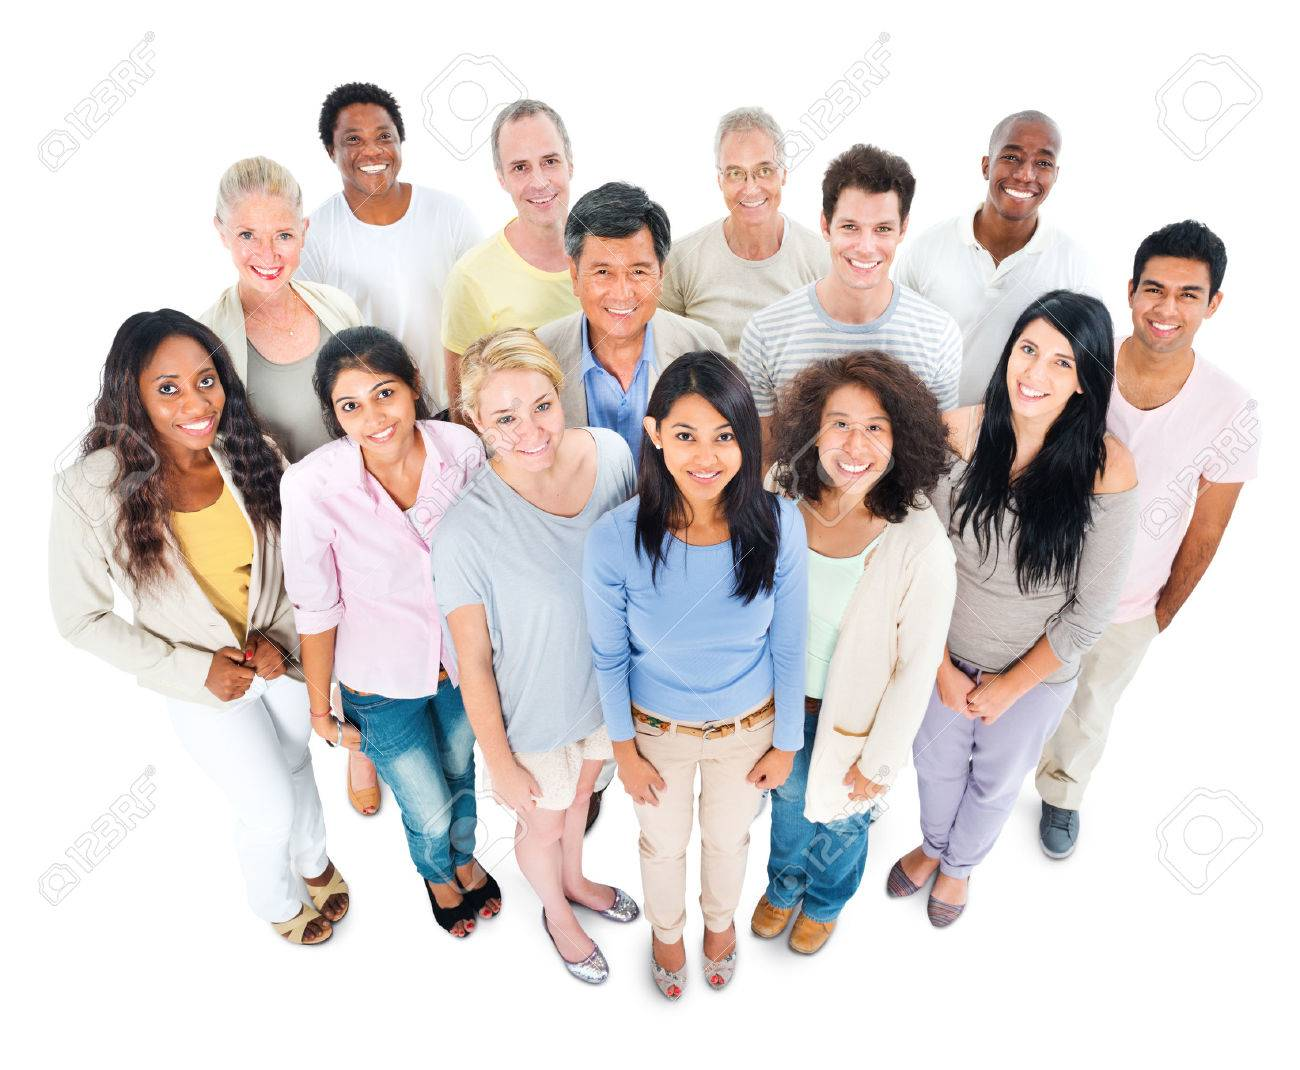 Large Group of People - 31293255